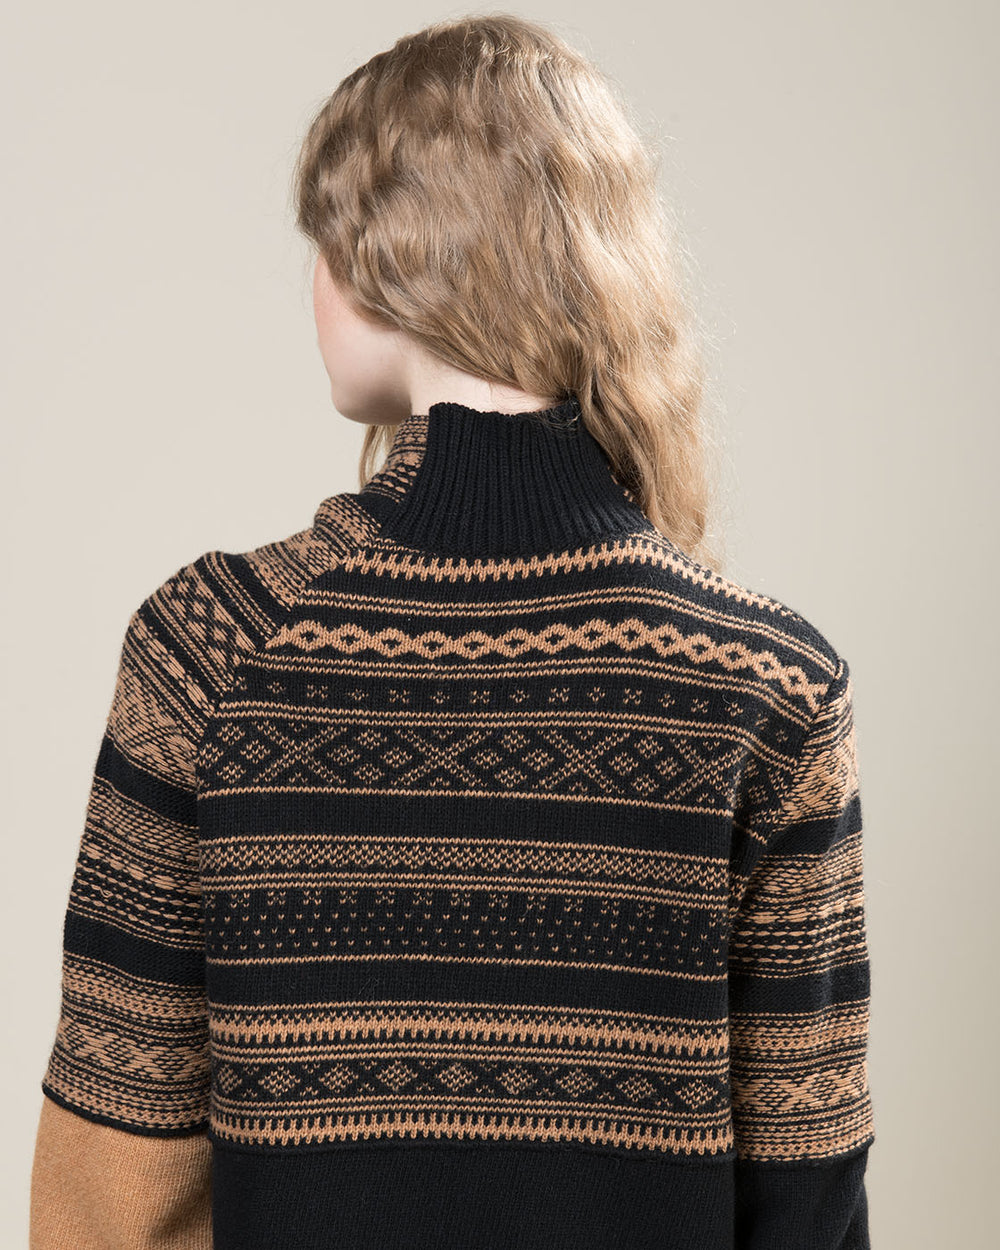 Black and Beige Turtleneck Sweater